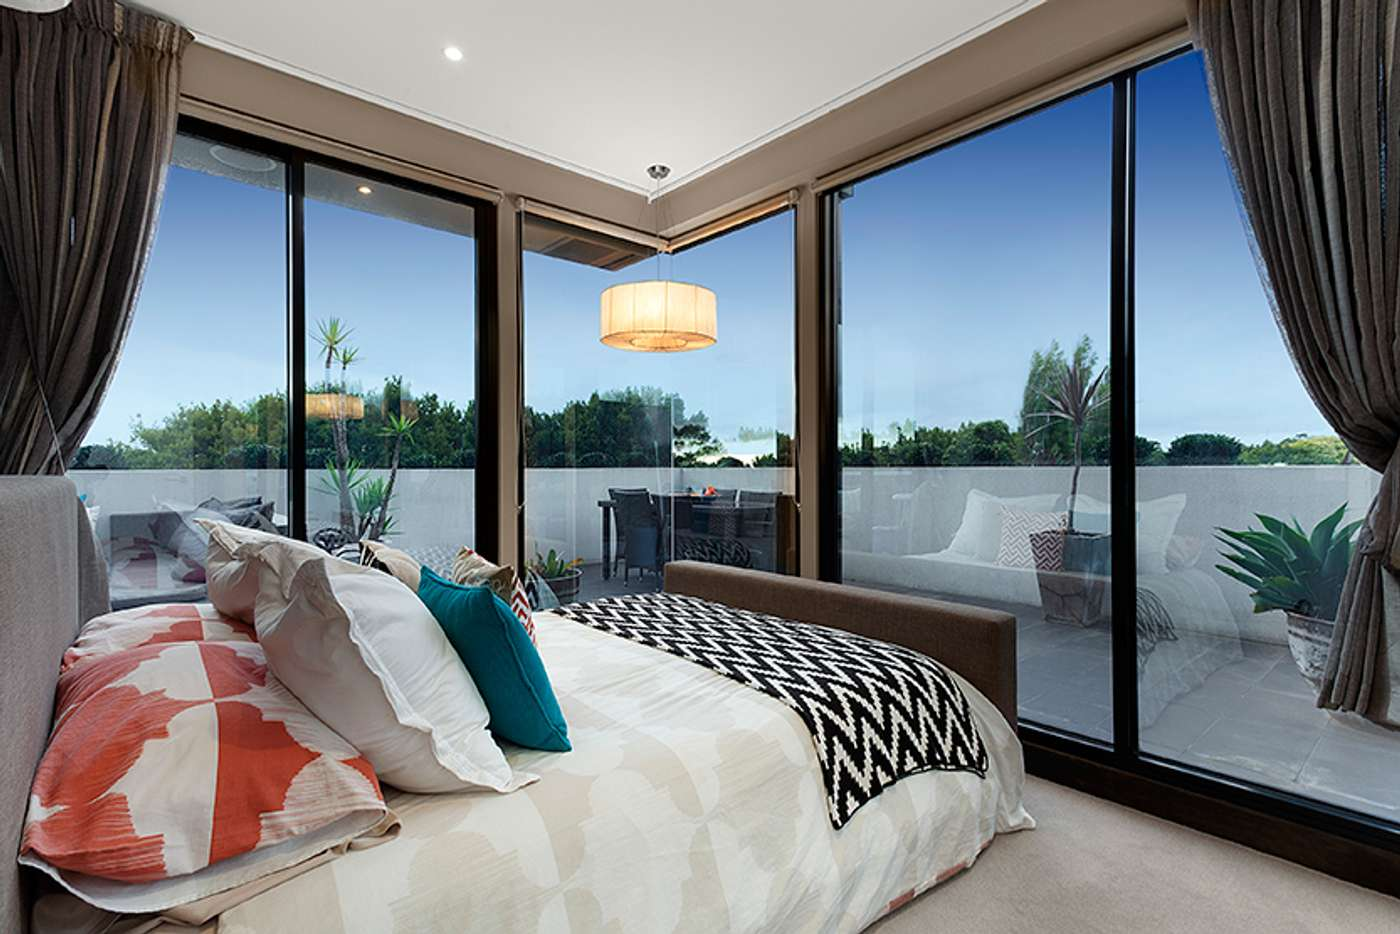 Sixth view of Homely apartment listing, 305/26-28 Broadway, Elwood VIC 3184